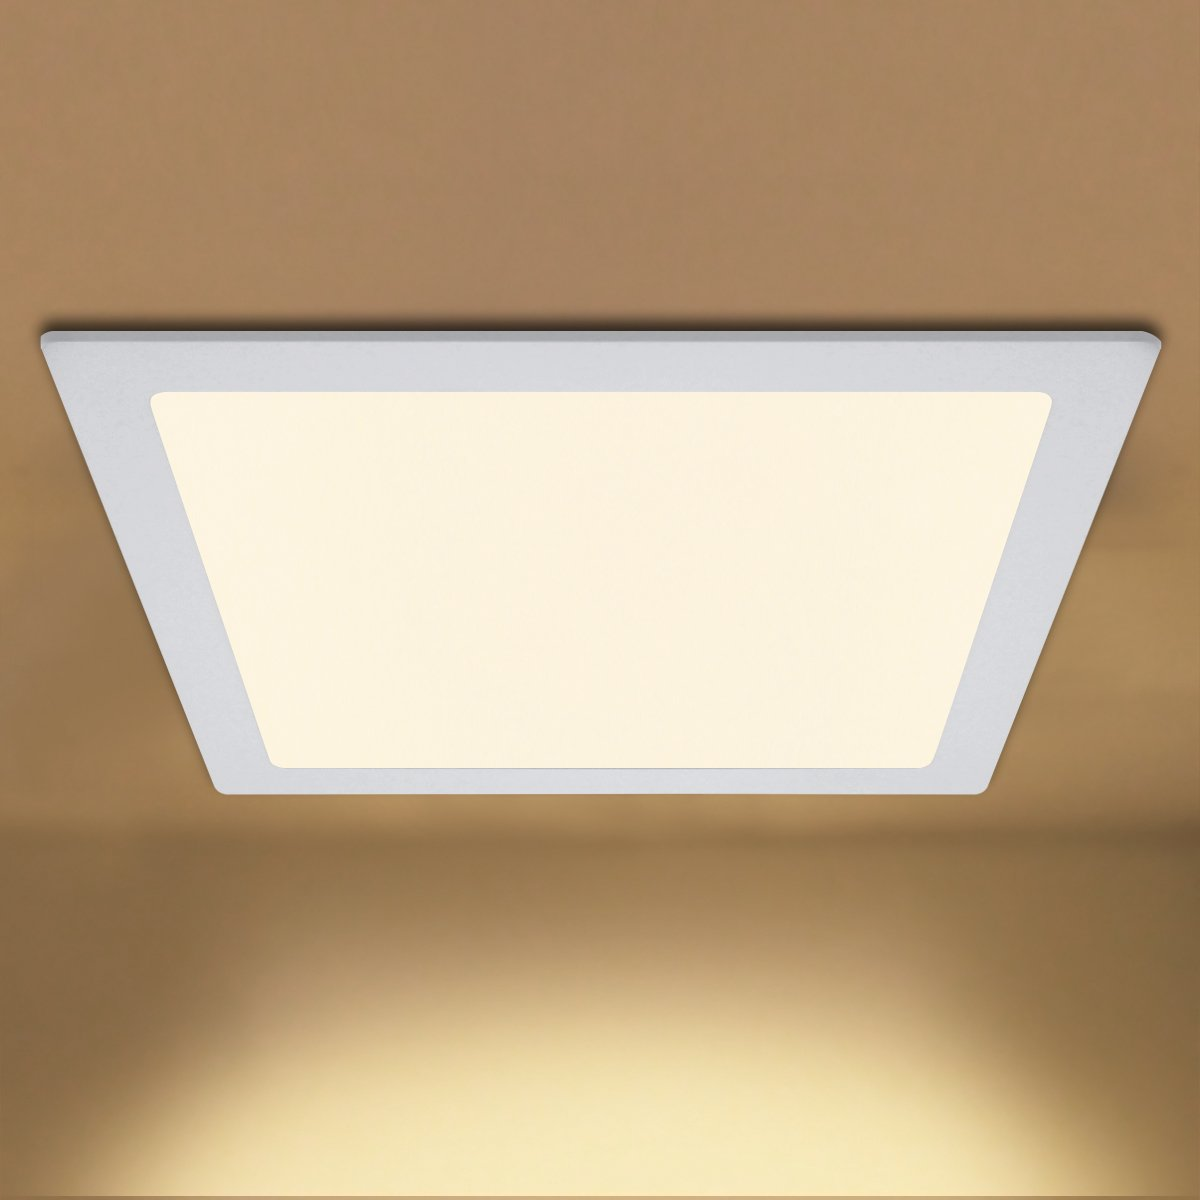 24w Square LED Ceiling Panel Recessed Down Light Flat Ultra Slim Lamp Warm White 3500K Super Bright 300mm x 300mm [Energy Class A+] Long Life Lamp Company